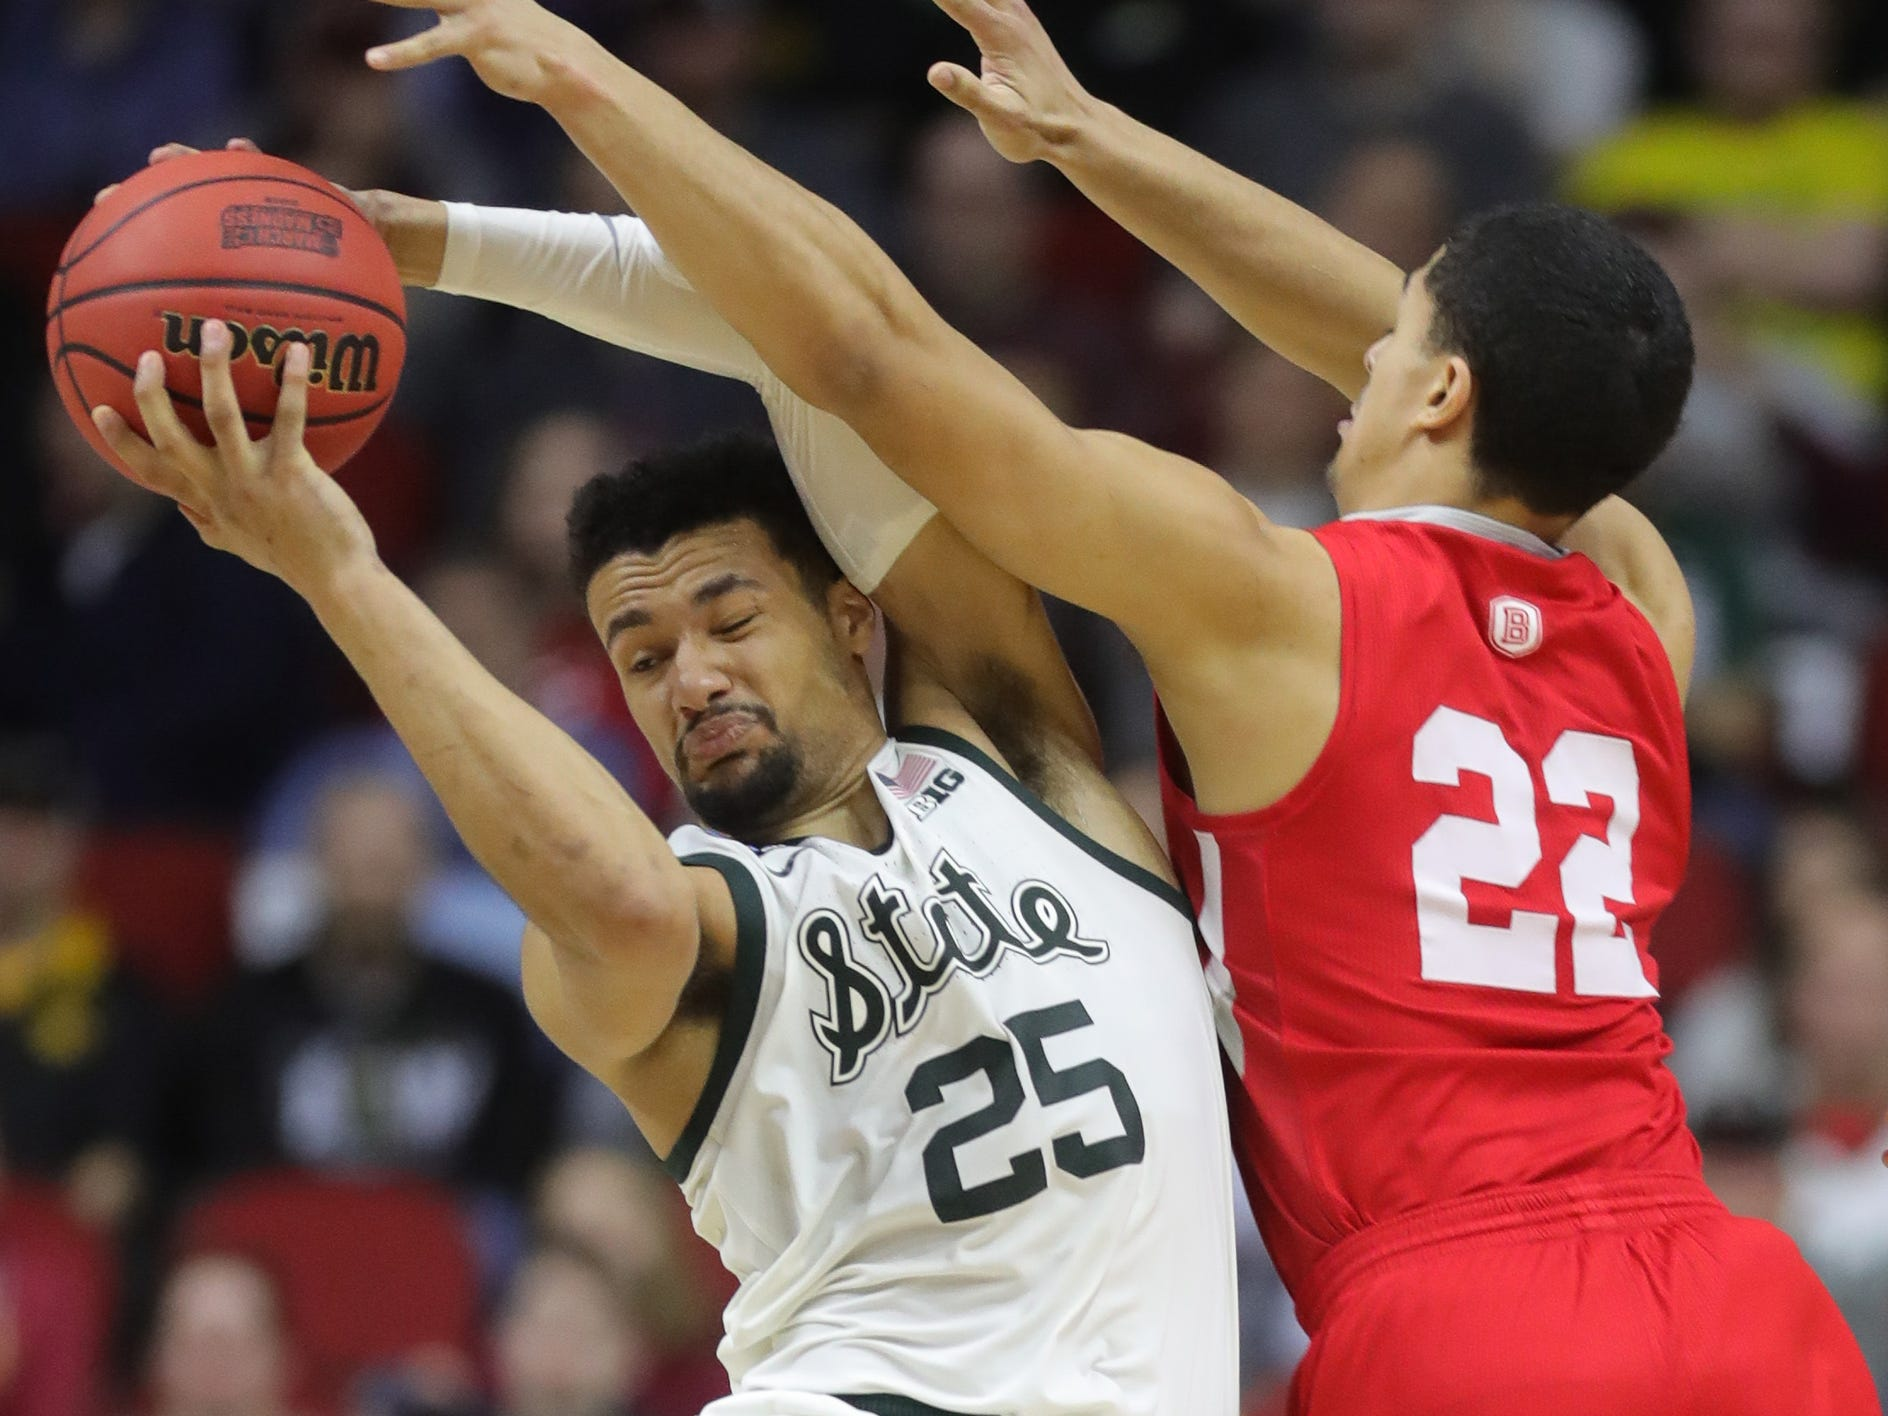 Michigan State's Kenny Goins rebounds against Bradley's Dwayne Lautier-Ogunleye during the second half of the NCAA tournament Thursday, March 21, 2019 at Wells Fargo Arena in Des Moines, Iowa.